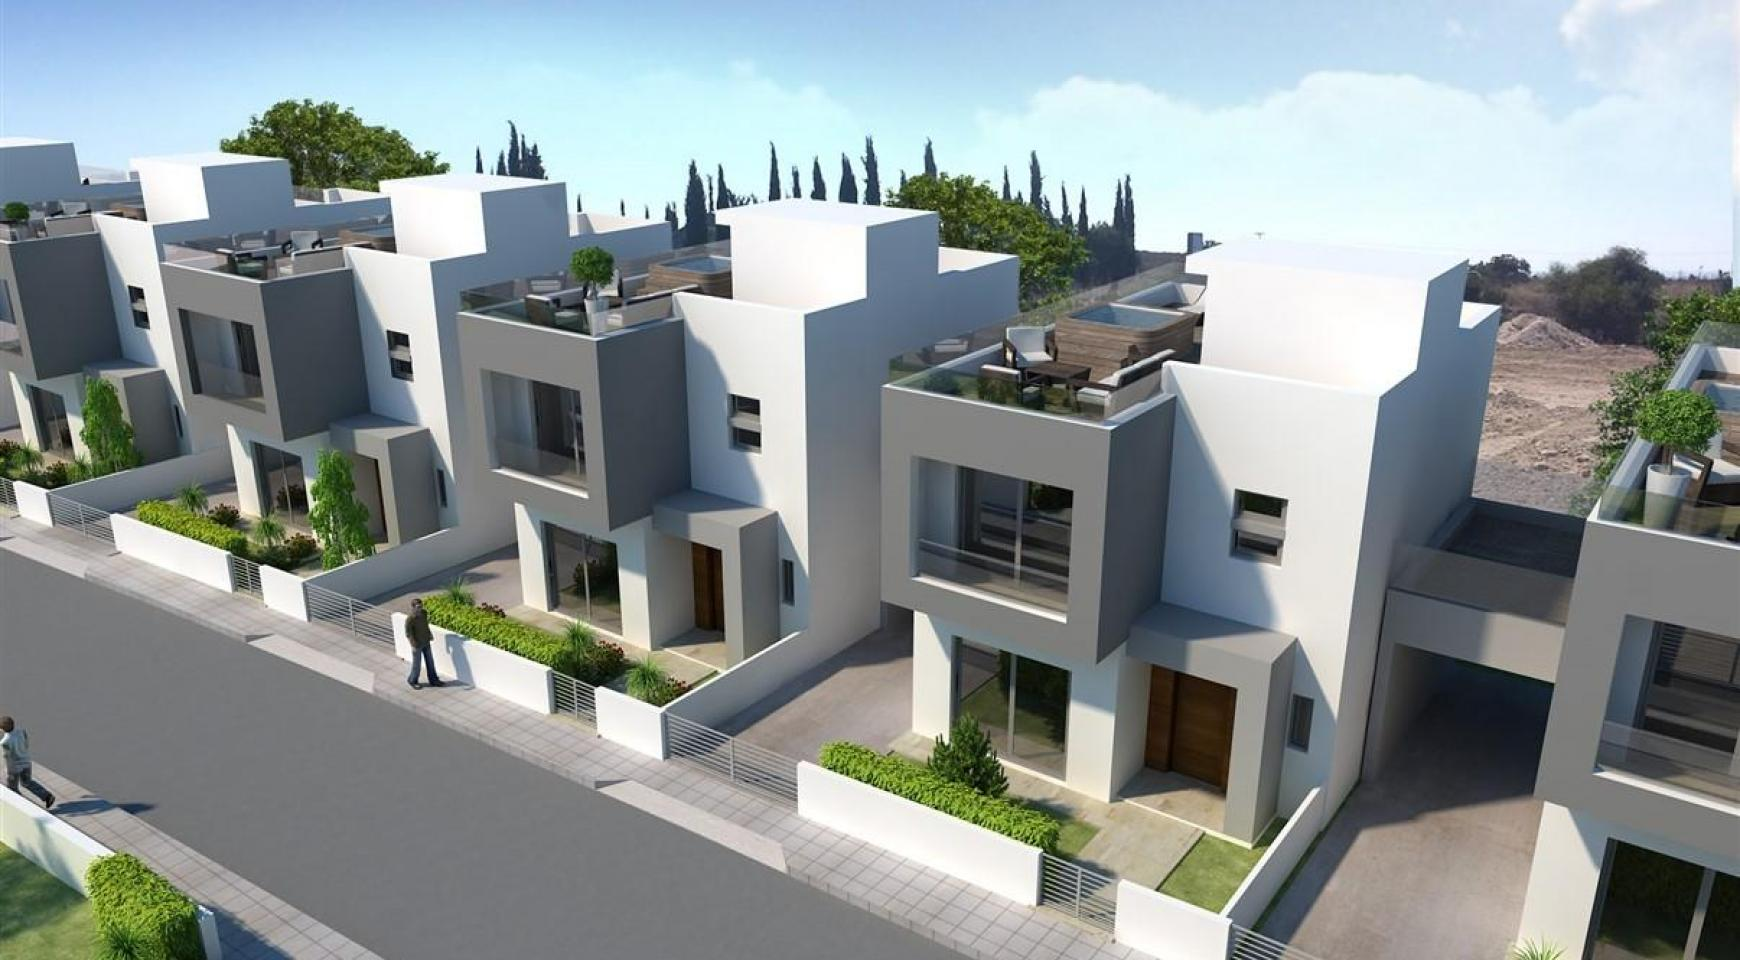 3 Bedroom Villa within a New Project - 2